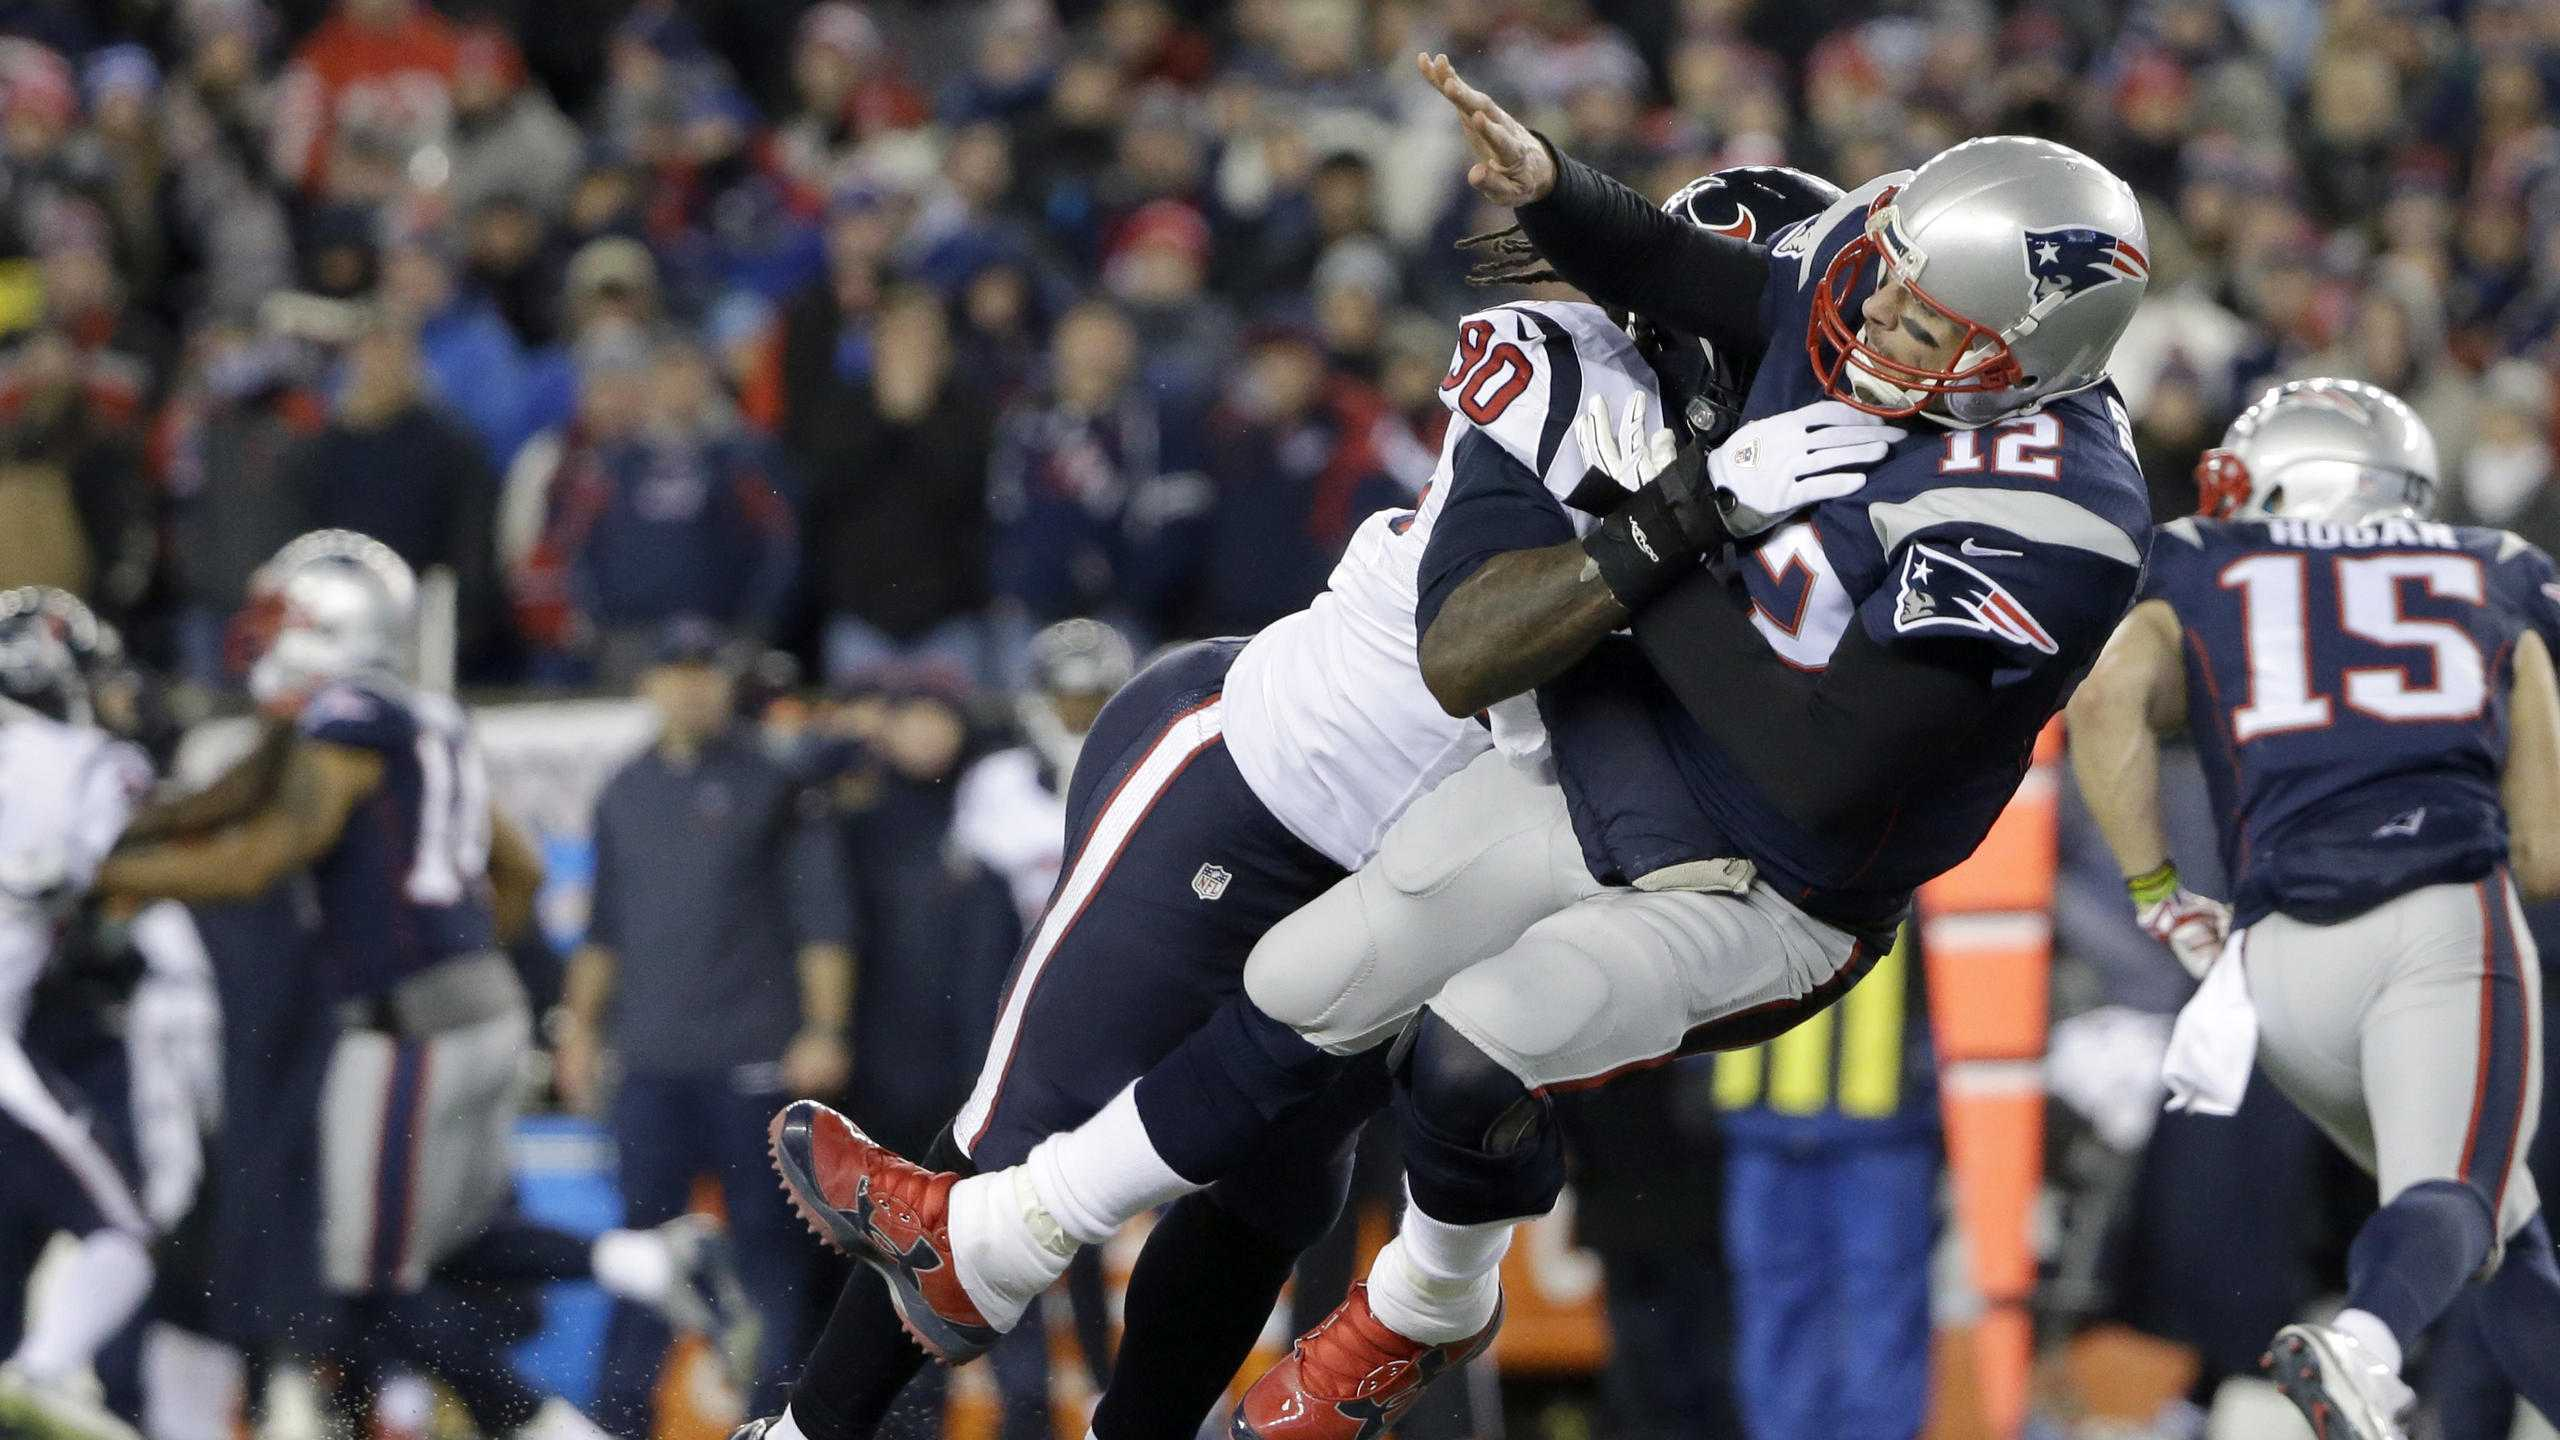 ​Houston Texans defensive end Jadeveon Clowney (90) levels New England Patriots quarterback Tom Brady (12) after Brady released a pass during the first half of an NFL divisional playoff football game, Saturday, Jan. 14, 2017, in Foxborough, Mass.